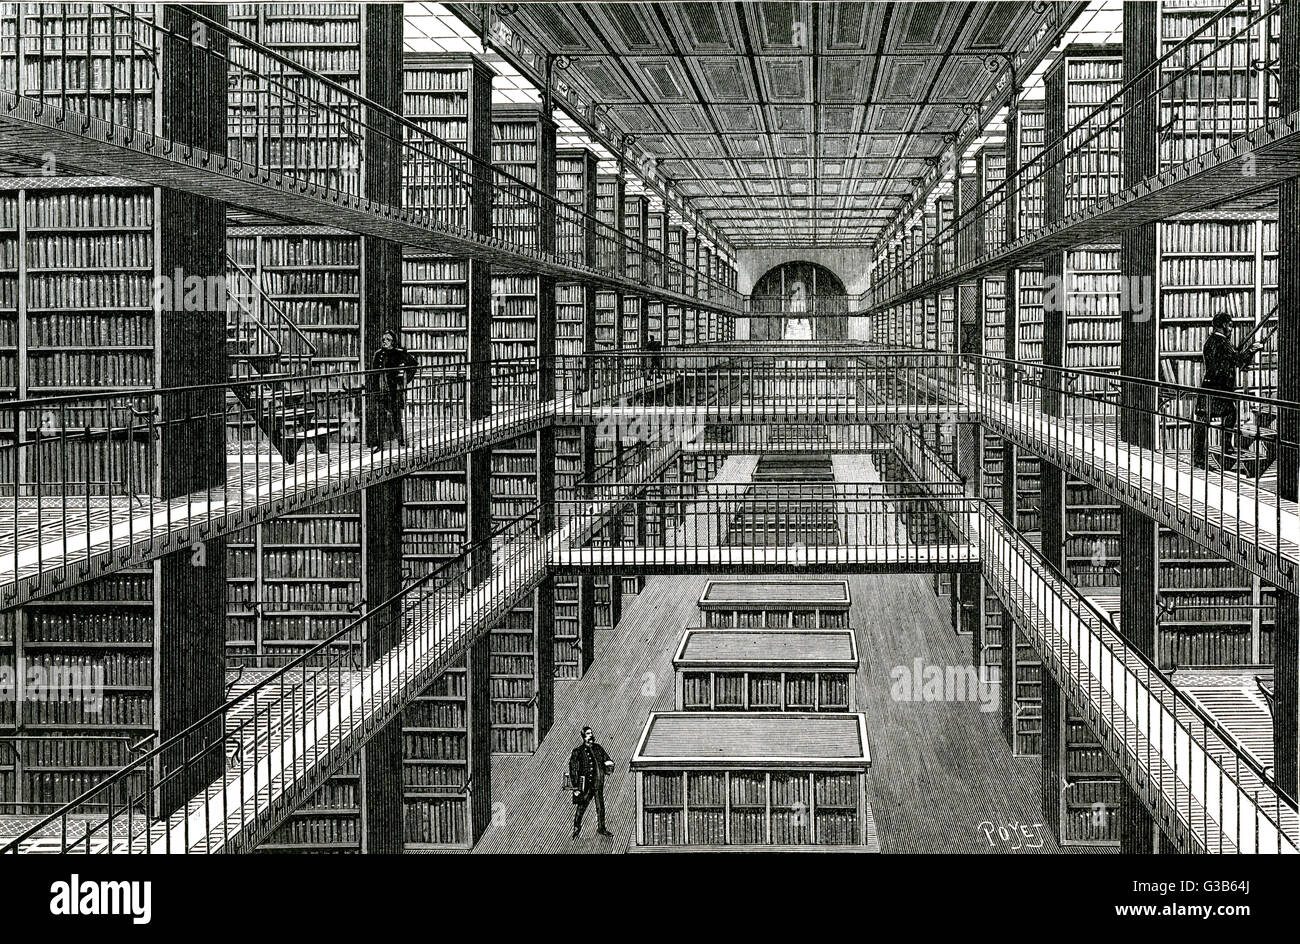 BIBLIOTHEQUE NATIONALE, Paris  Behind the scenes - the  'magasin central' where the  books are stacked : - Stock Image